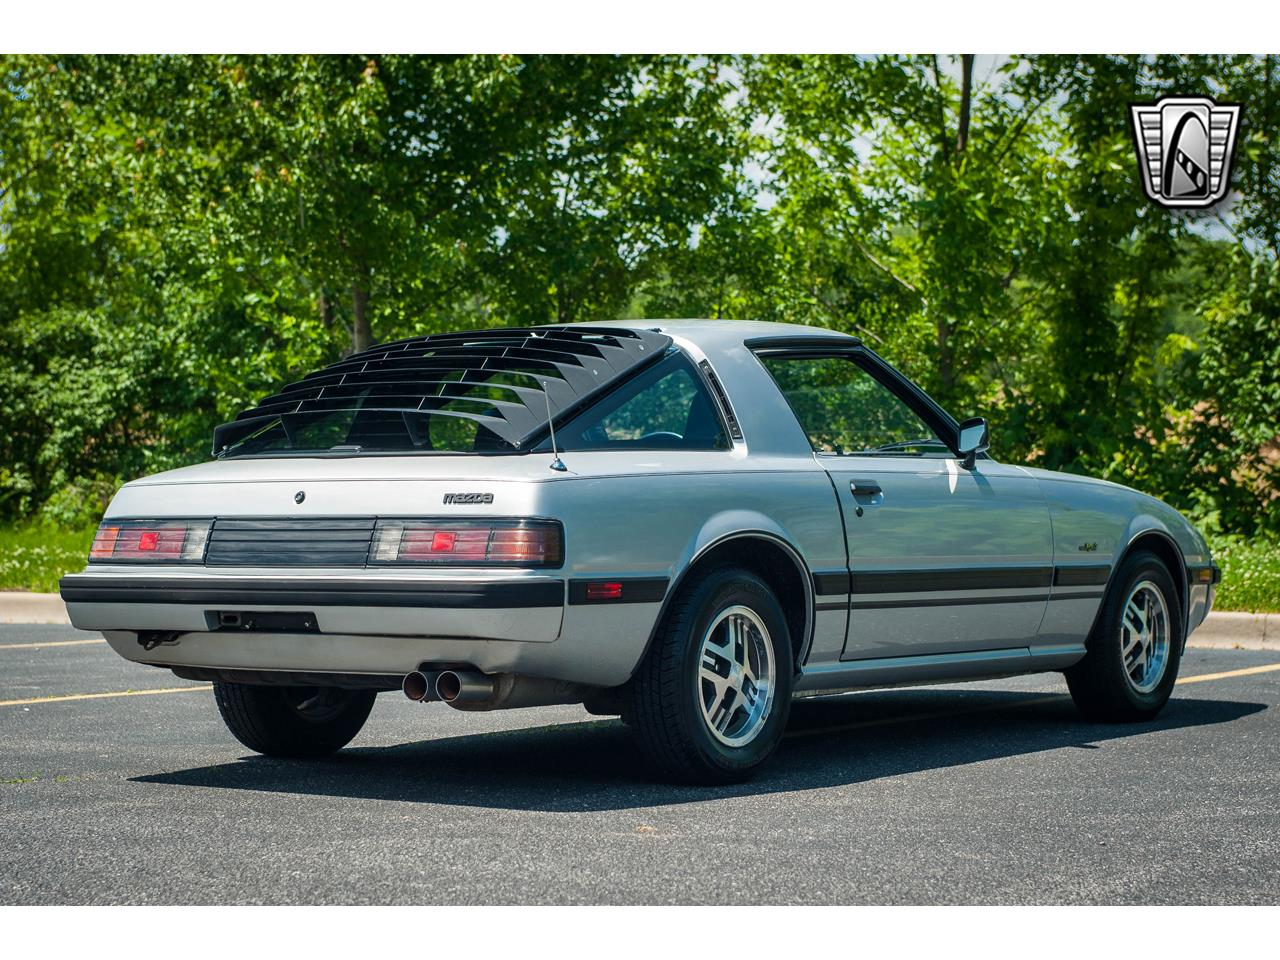 Large Picture of 1982 Mazda RX-7 located in Illinois Offered by Gateway Classic Cars - St. Louis - QB9V